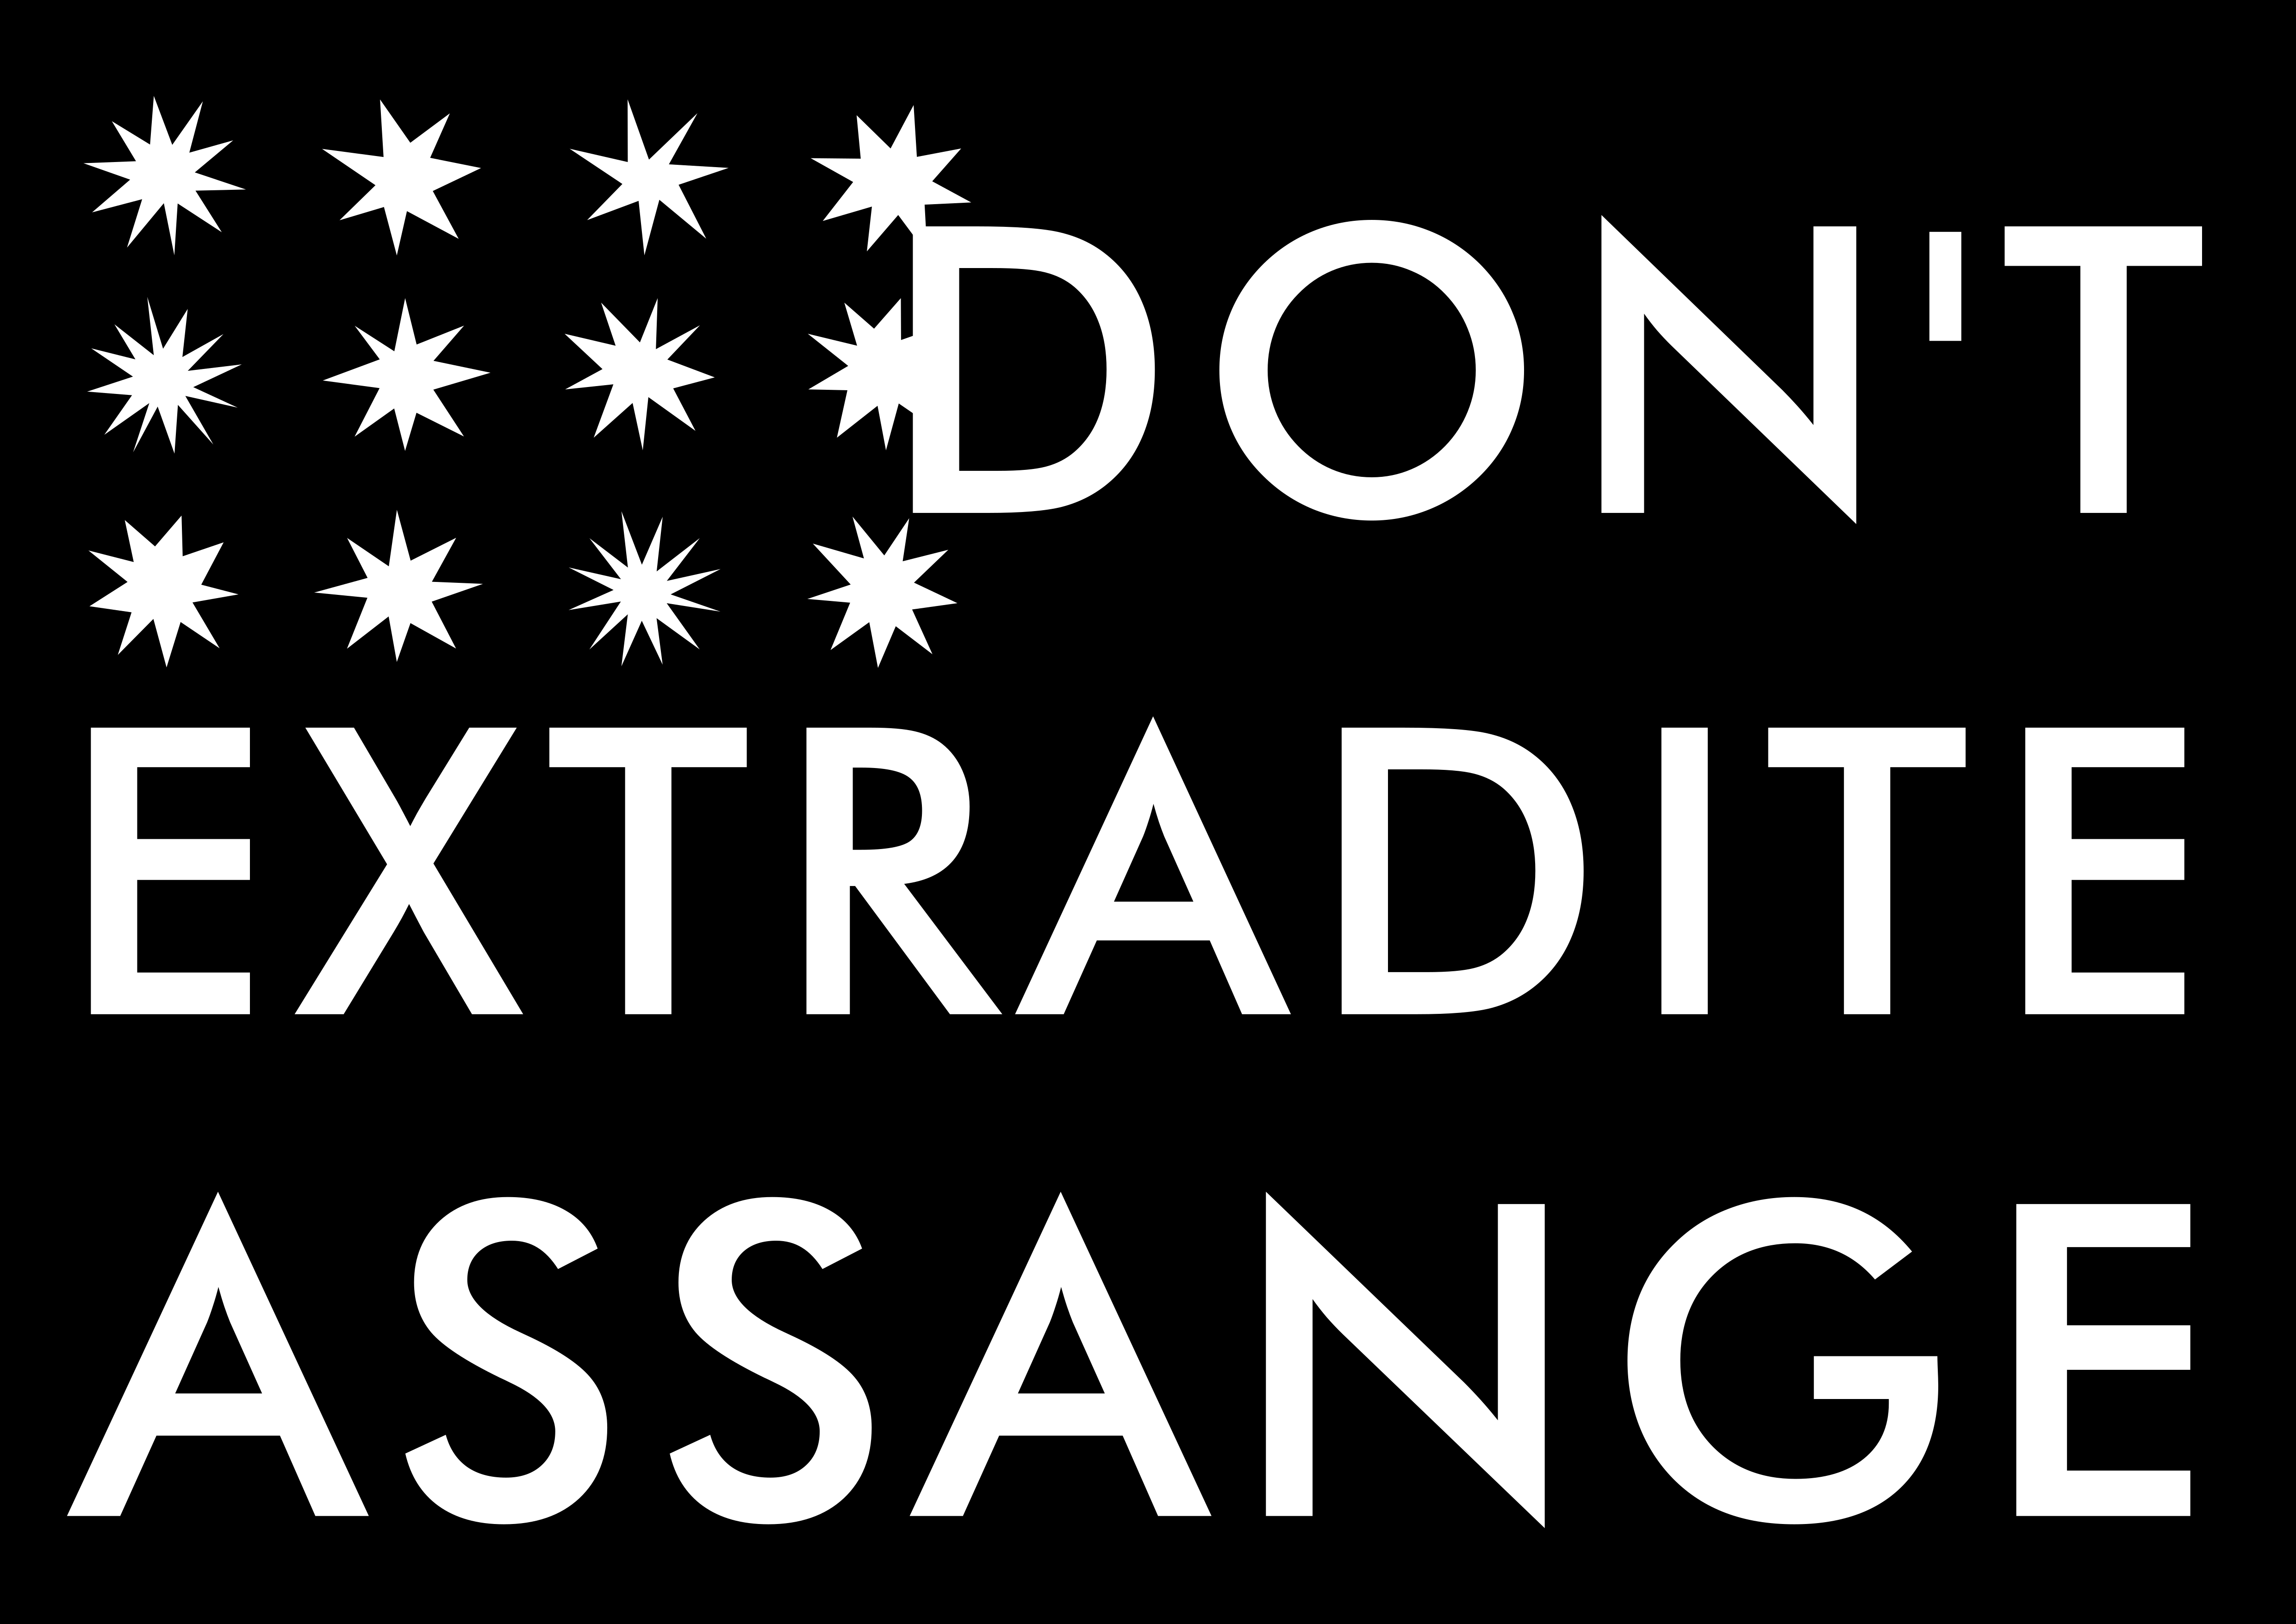 campaign_material:dont_extradite_assange-flag.png